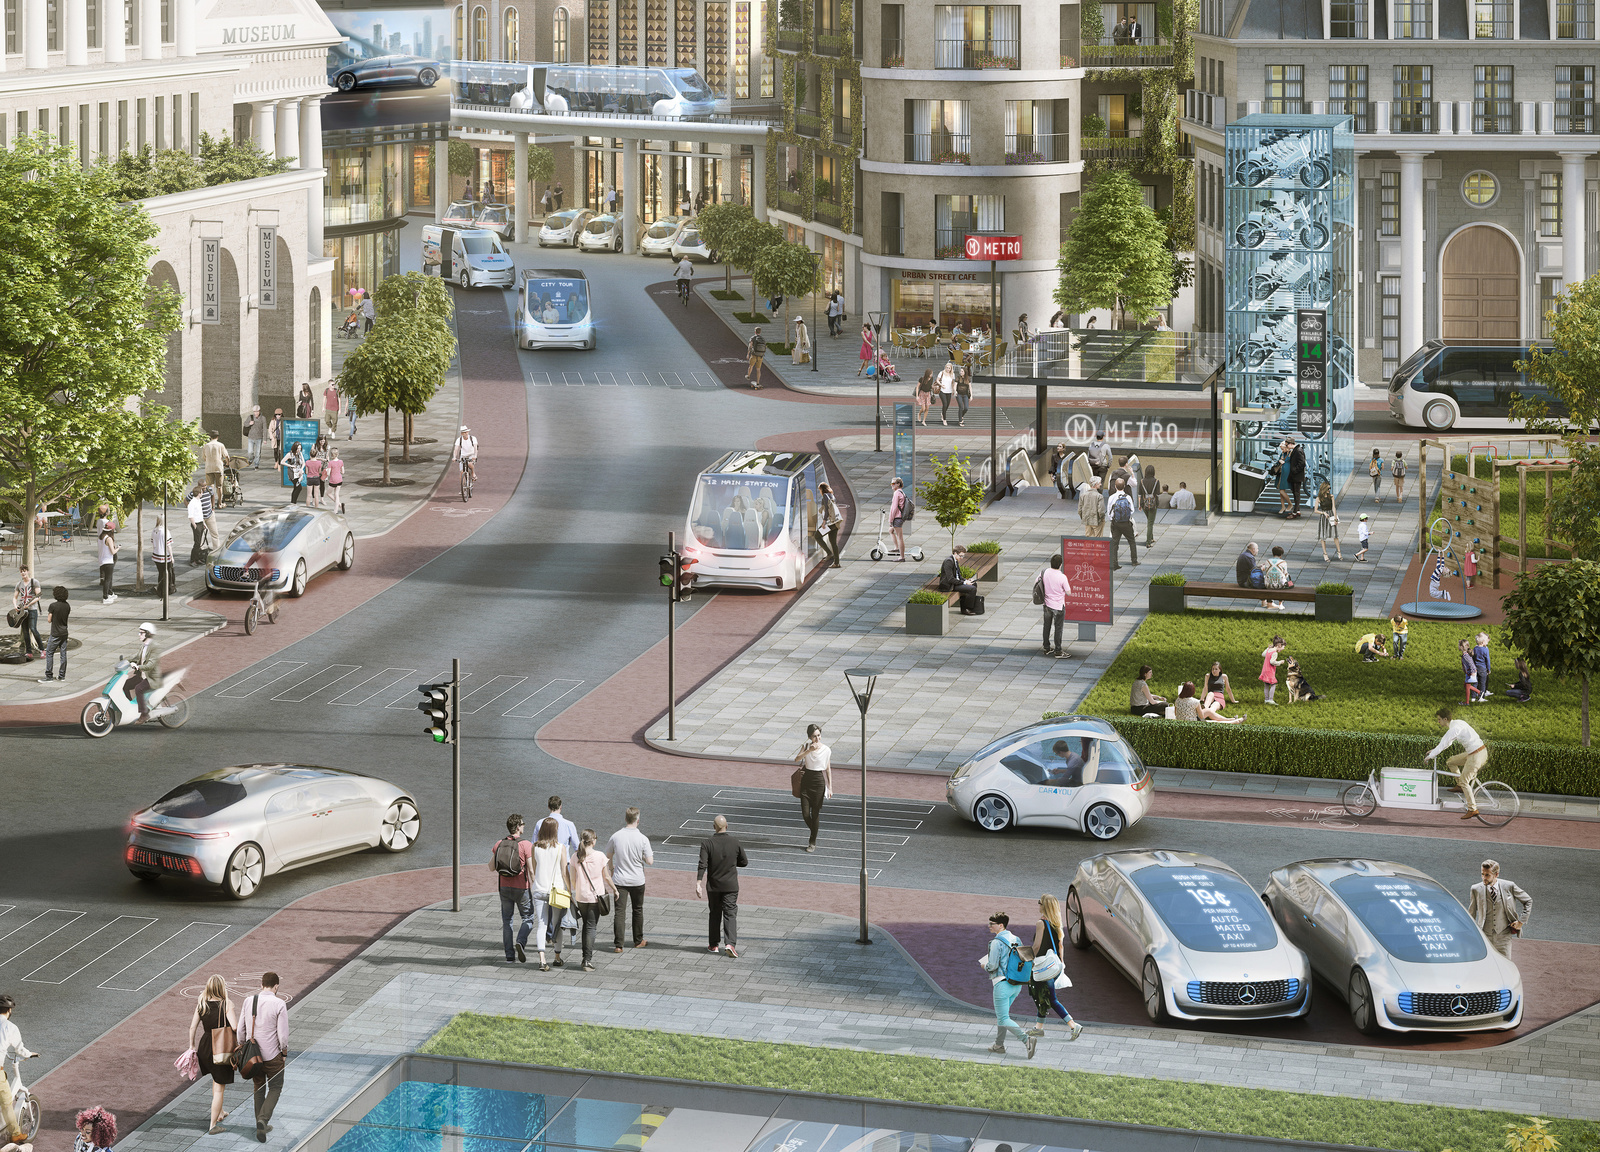 Driverless driving: game changer for individual mobility